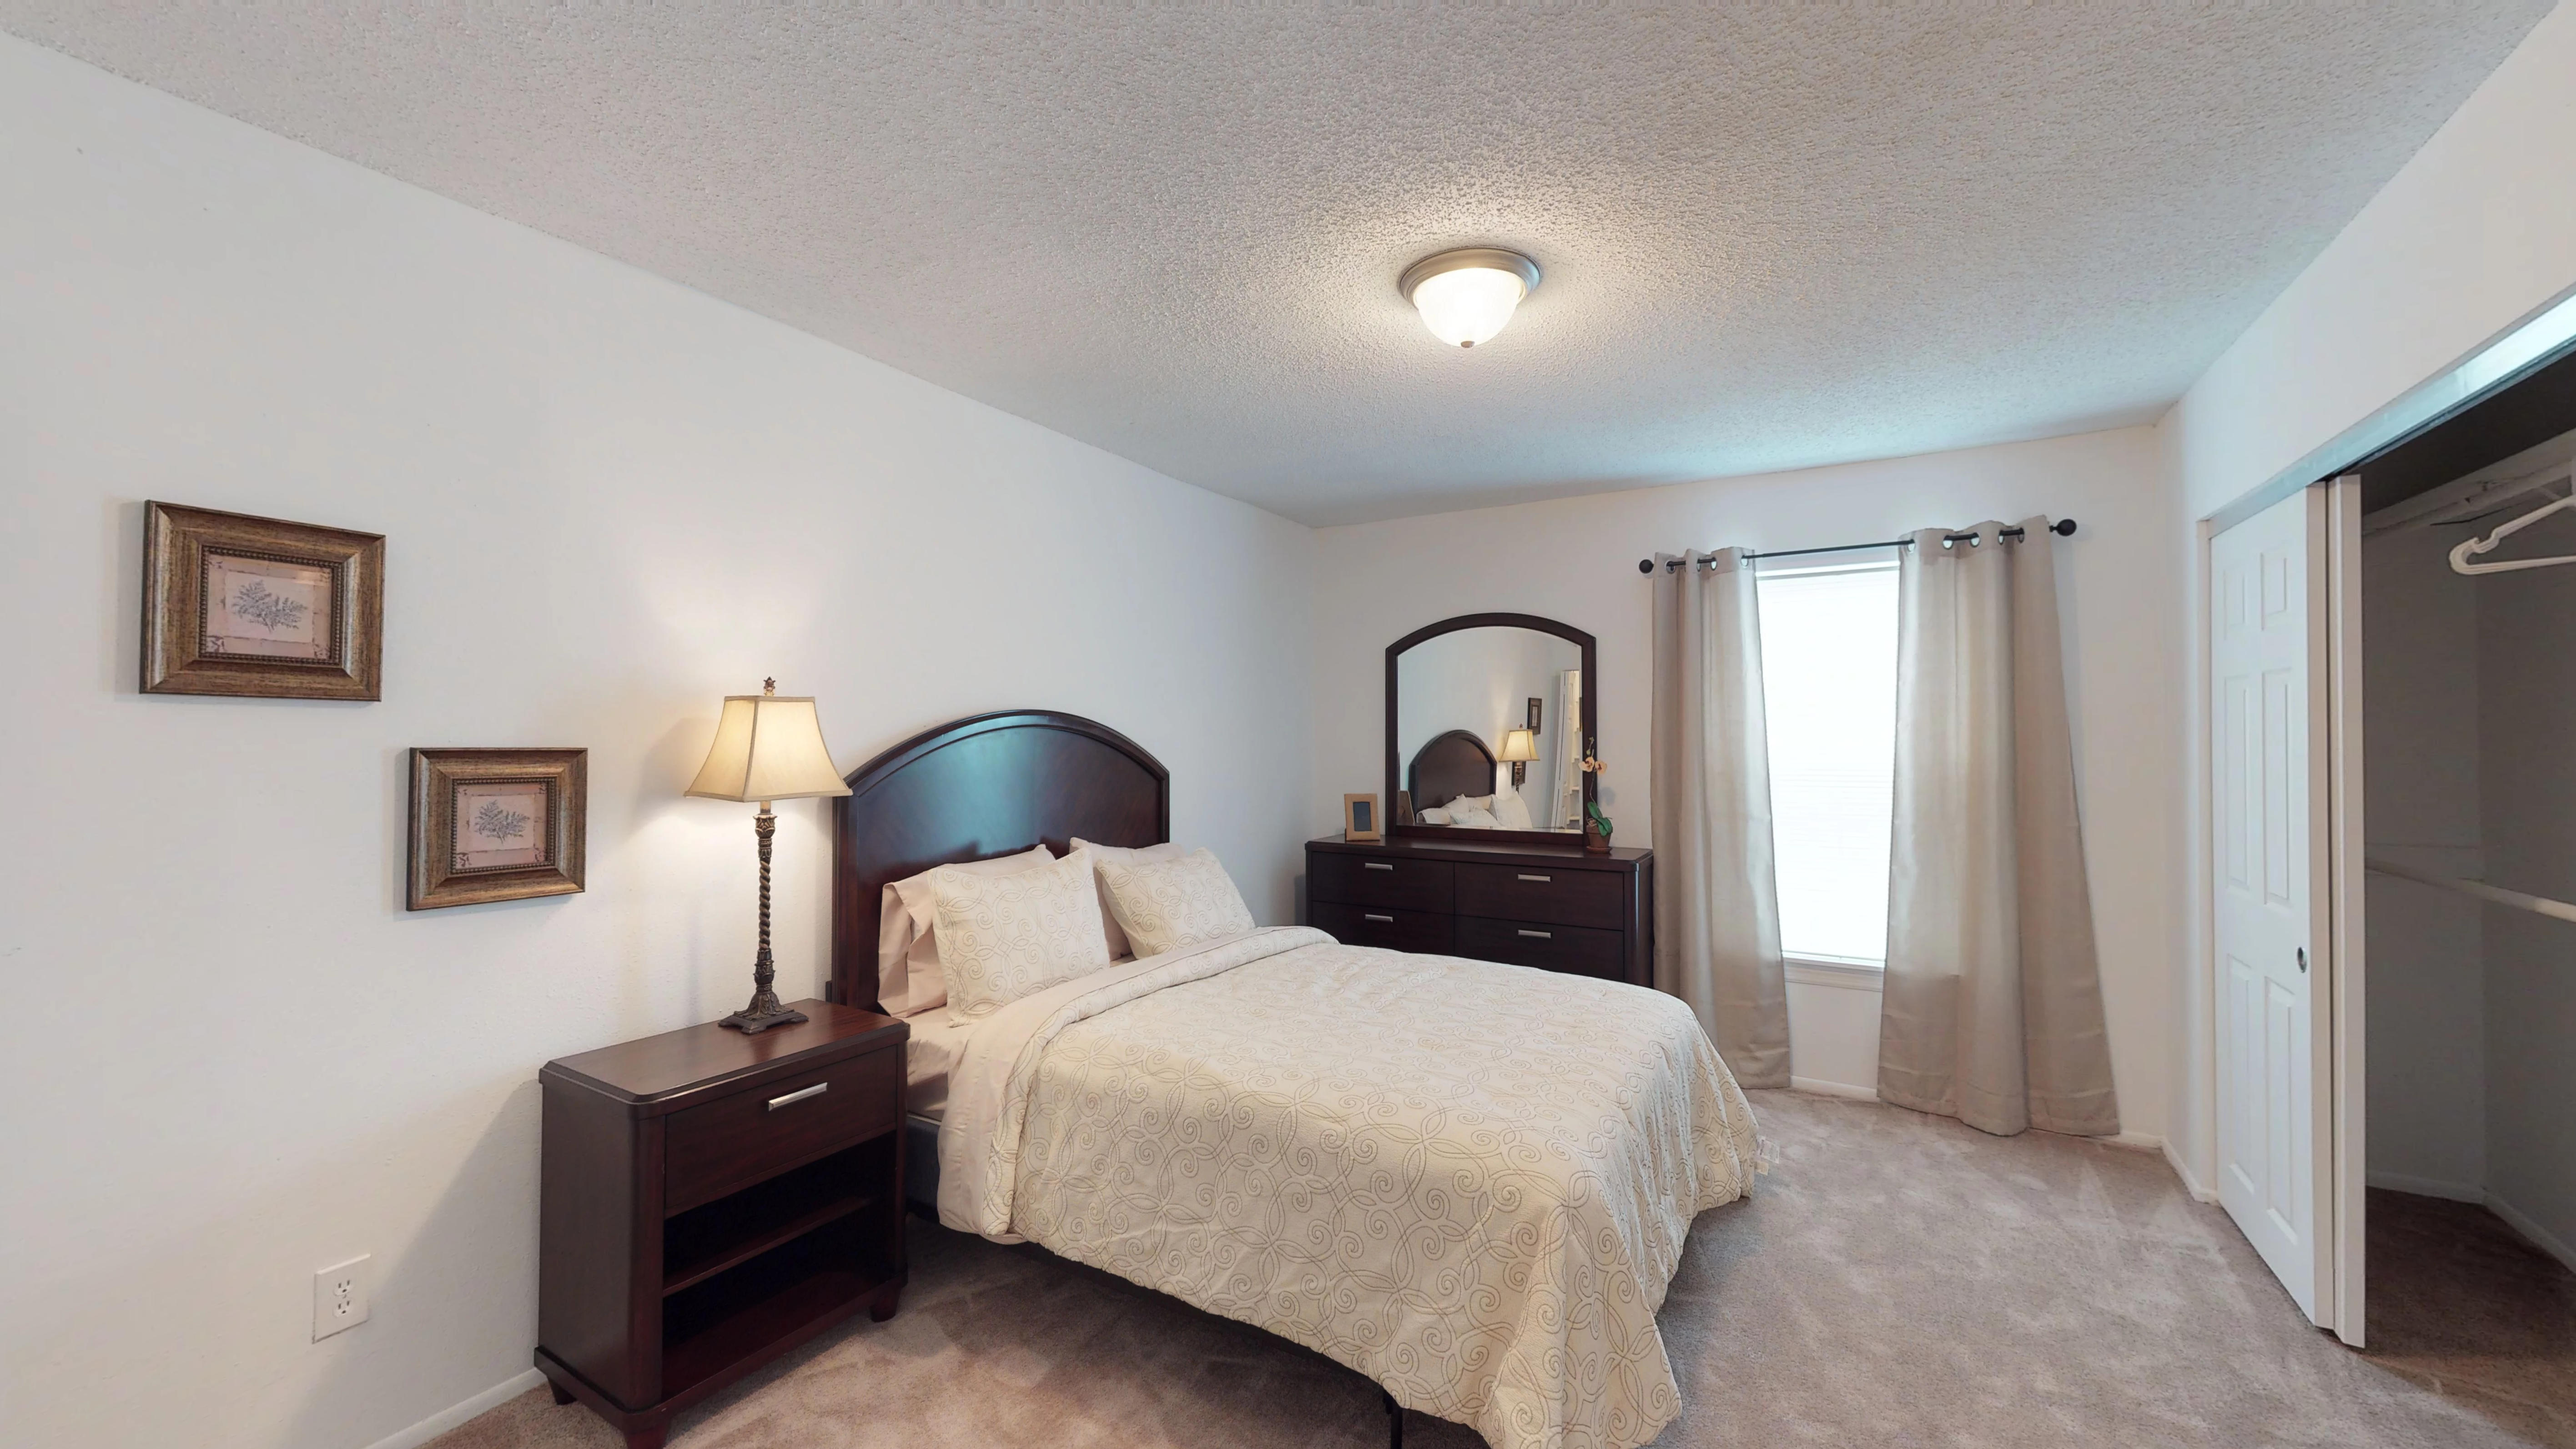 Woodlake-Villas-1-Bed-1-Bath-706B-07202018_091931